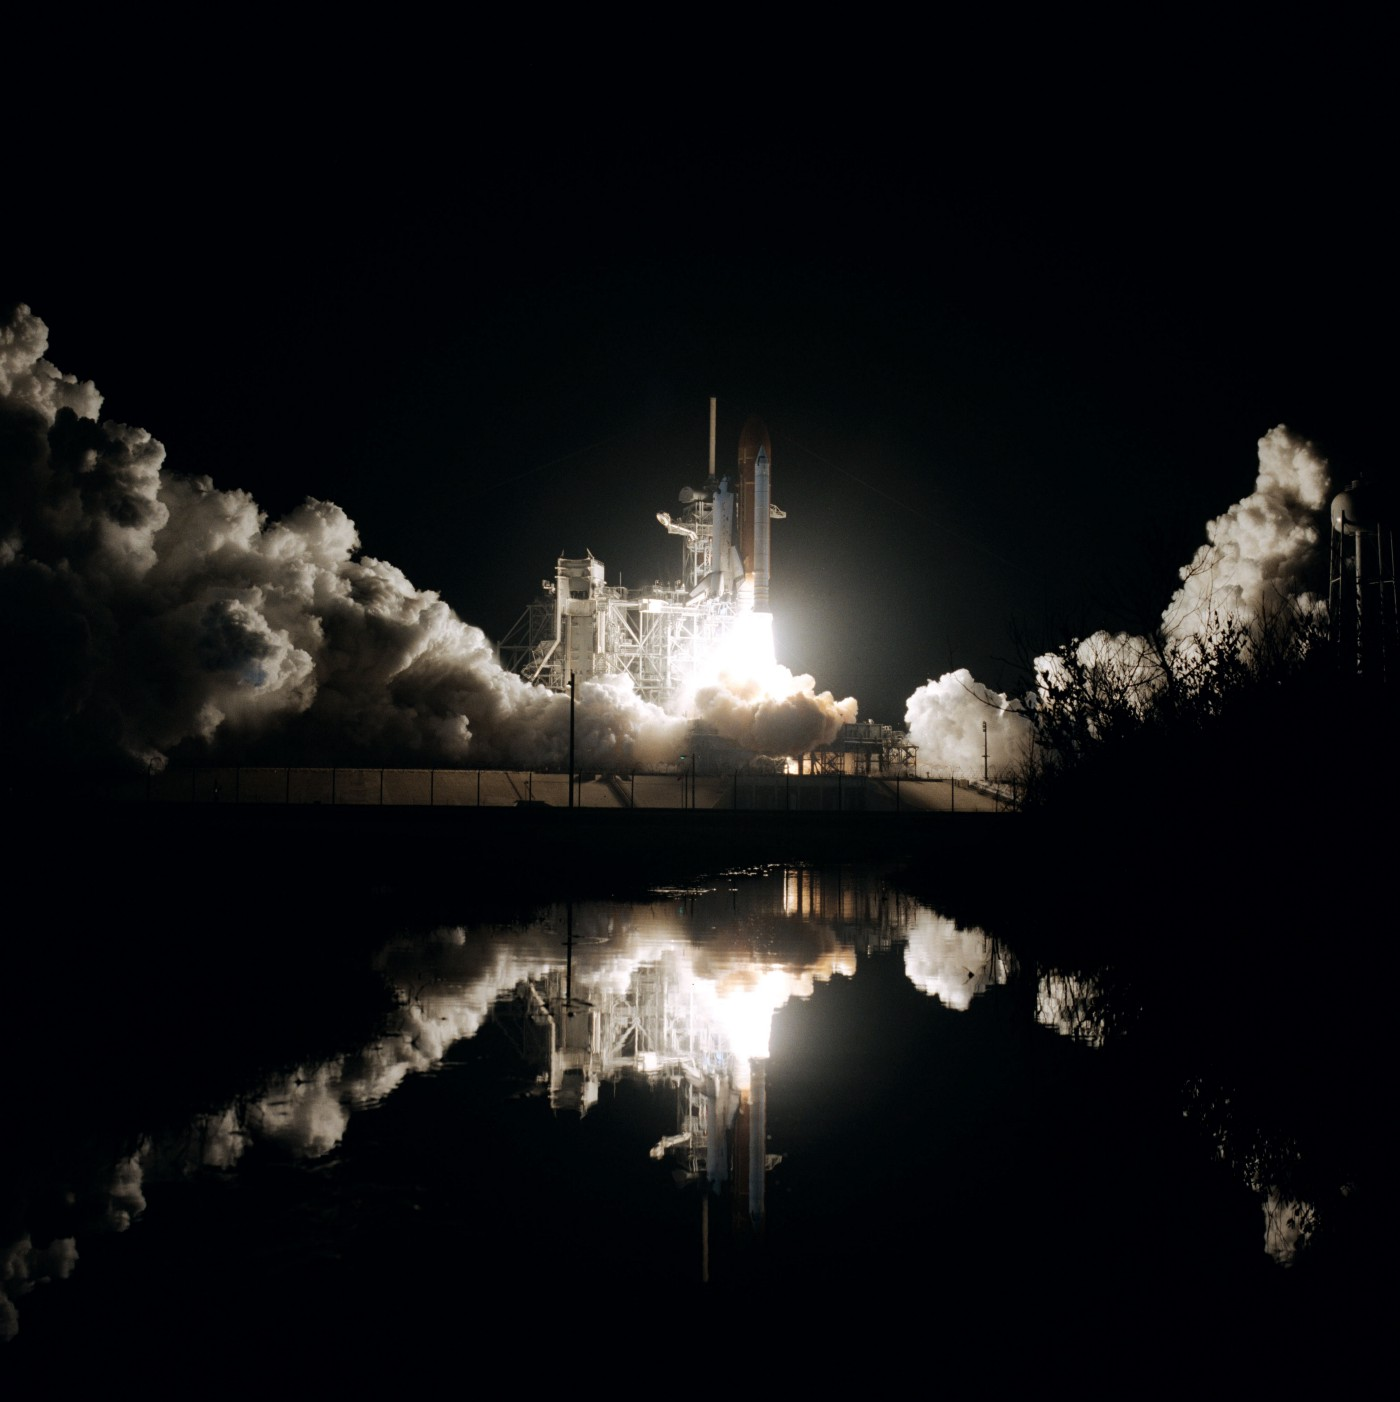 Nighttime Space Shuttle launch with fuel clouds and reflection